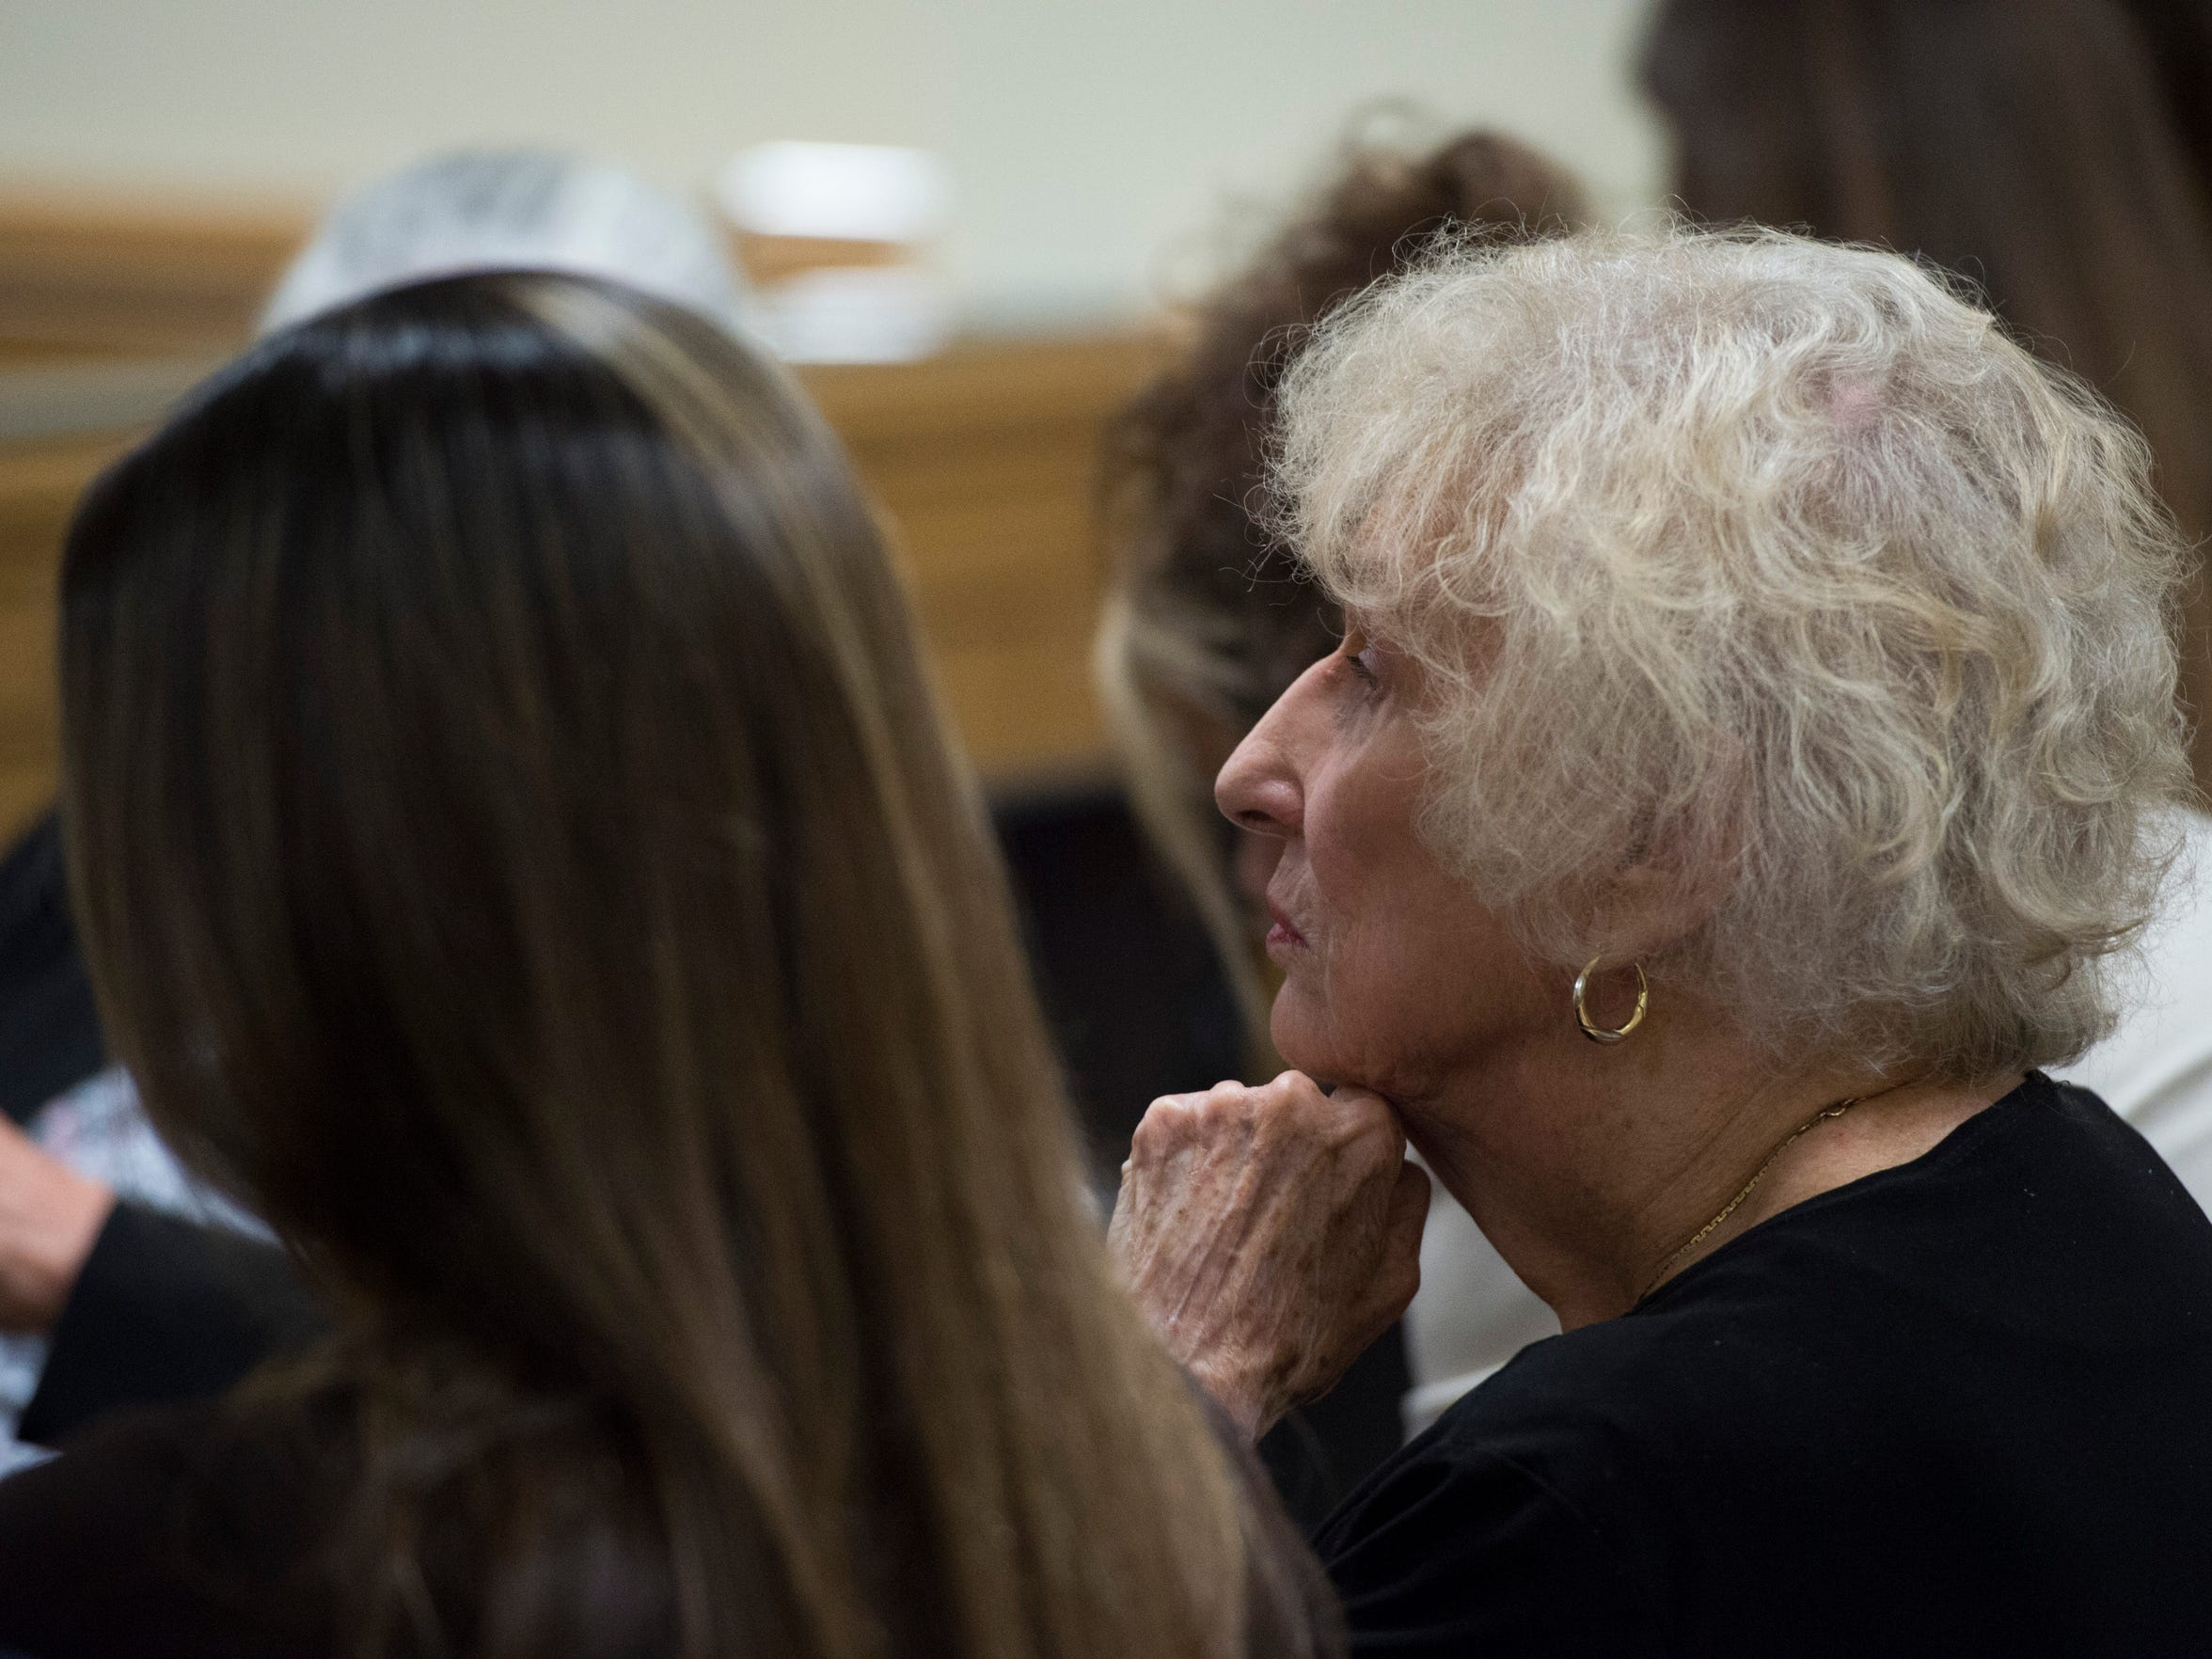 Relatives of murder victim Gertrude Trbovich, a 66-year-old who was killed in 1977, attend a resentencing hearing for killer James Morgan on Monday, June 11, 2018 at the Martin County Courthouse in Stuart. Despite four murder trials, four death sentences, one parole hearing and being sentenced to a life term, Morgan, 57, is eligible for a resentencing because of a recent court ruling regarding juvenile murderers.